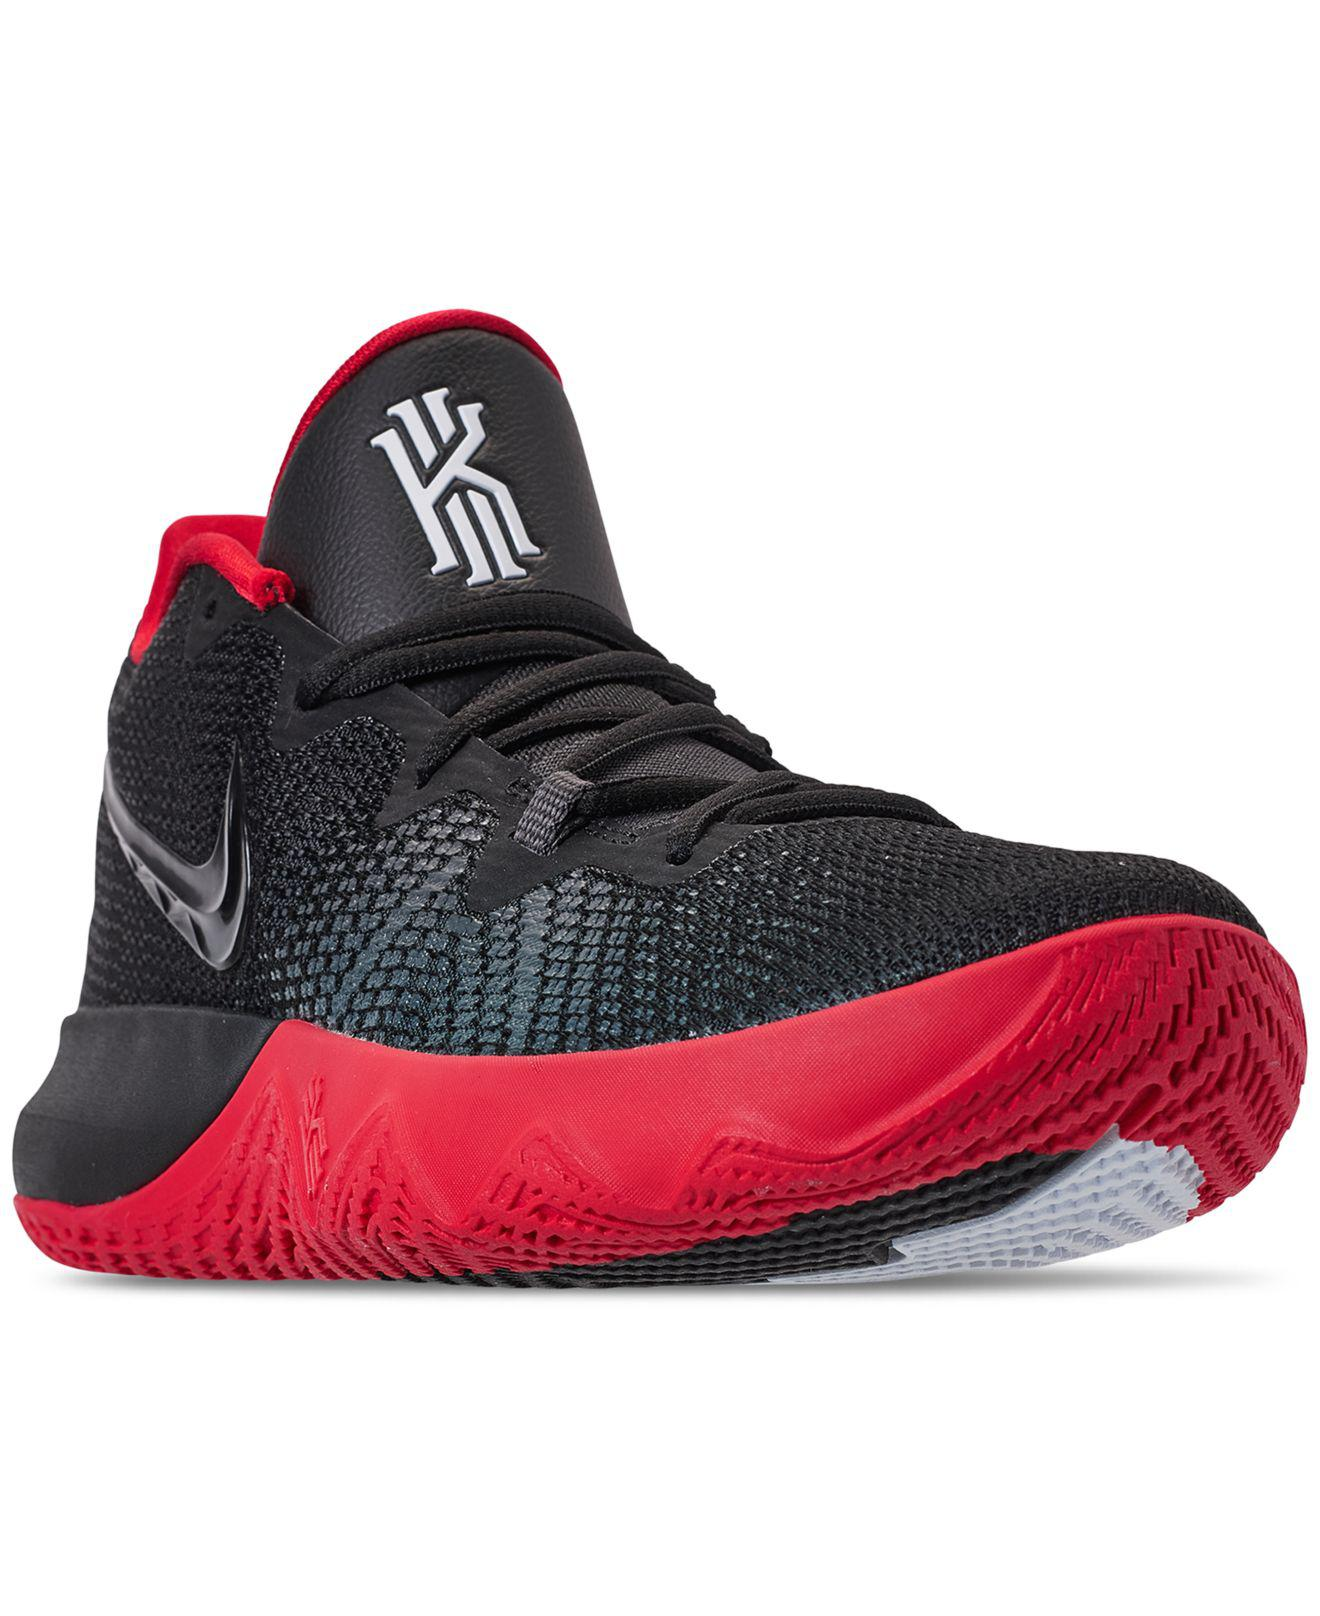 on sale e058e 238db nike -BLACKBLACK-WHITE-UNIV-RE-Kyrie-Flytrap-Basketball-Sneakers-From-Finish-Line.jpeg